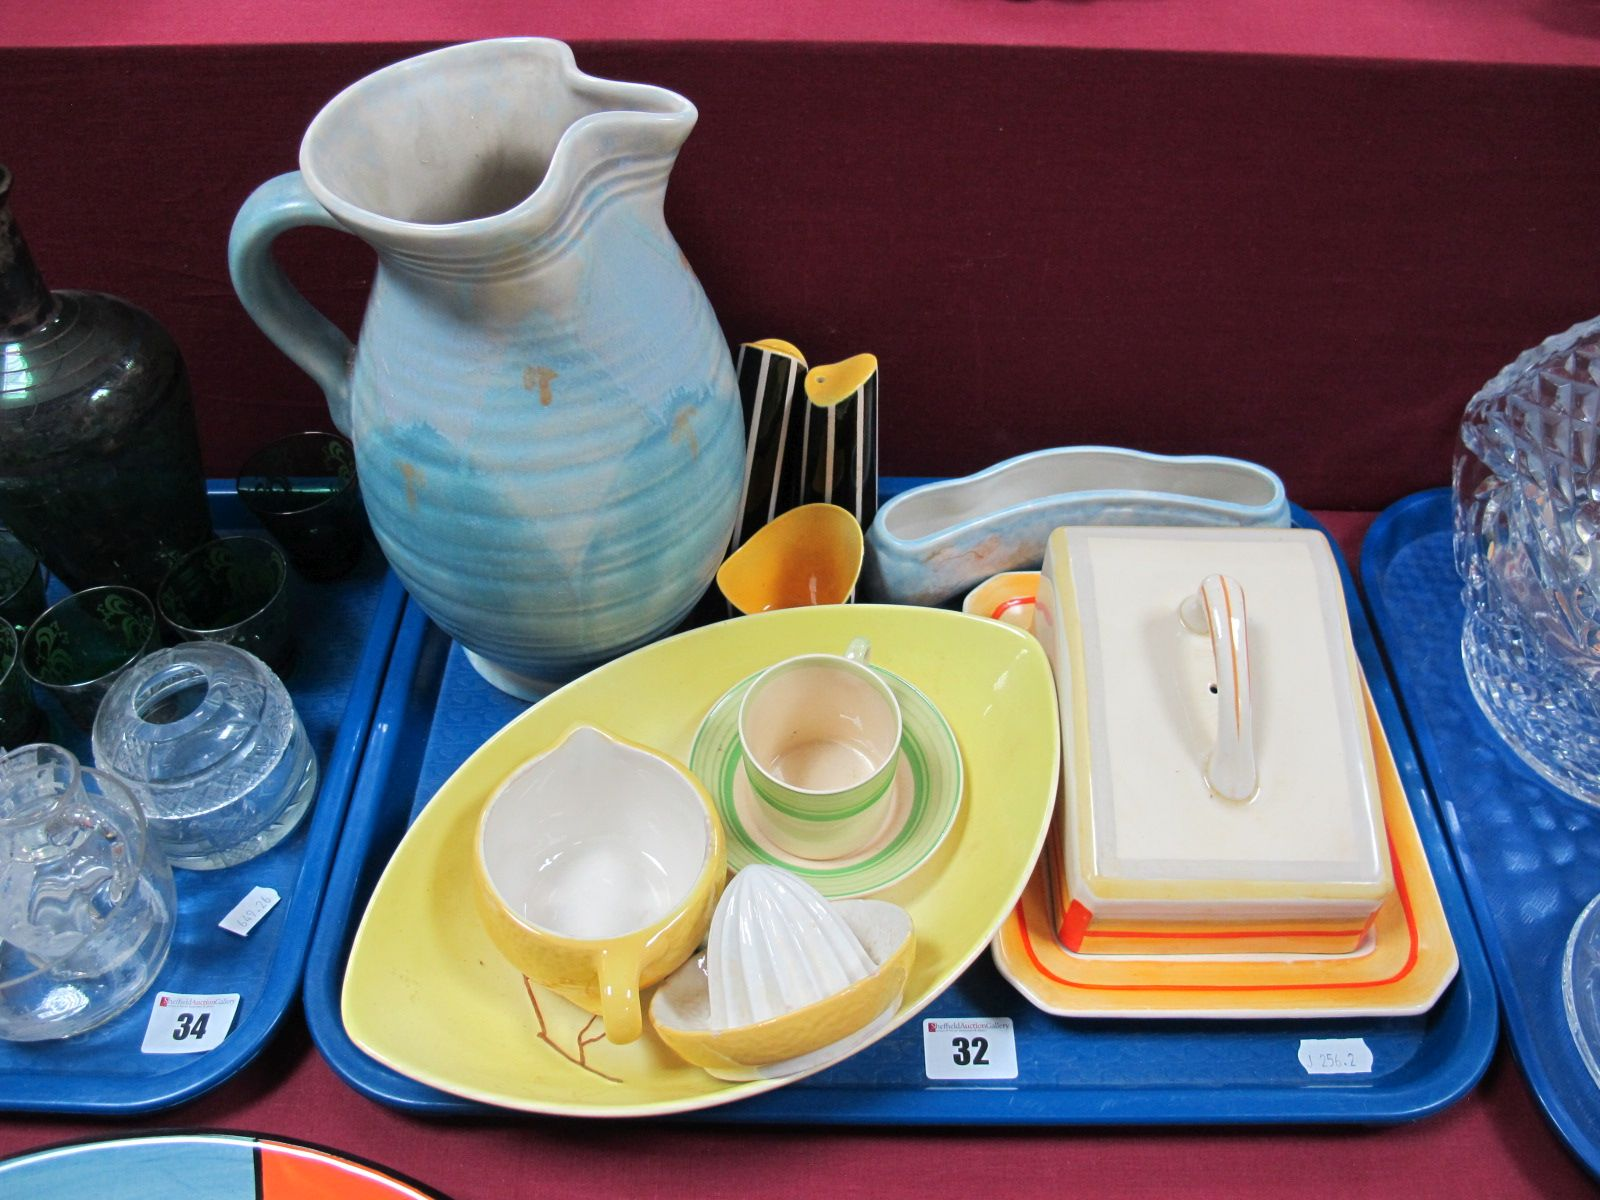 Lot 32 - A Beswick Jug, with rimmed decoration, Carlton Ware dish, Woods Ivory Ware cheese dish:- One Tray